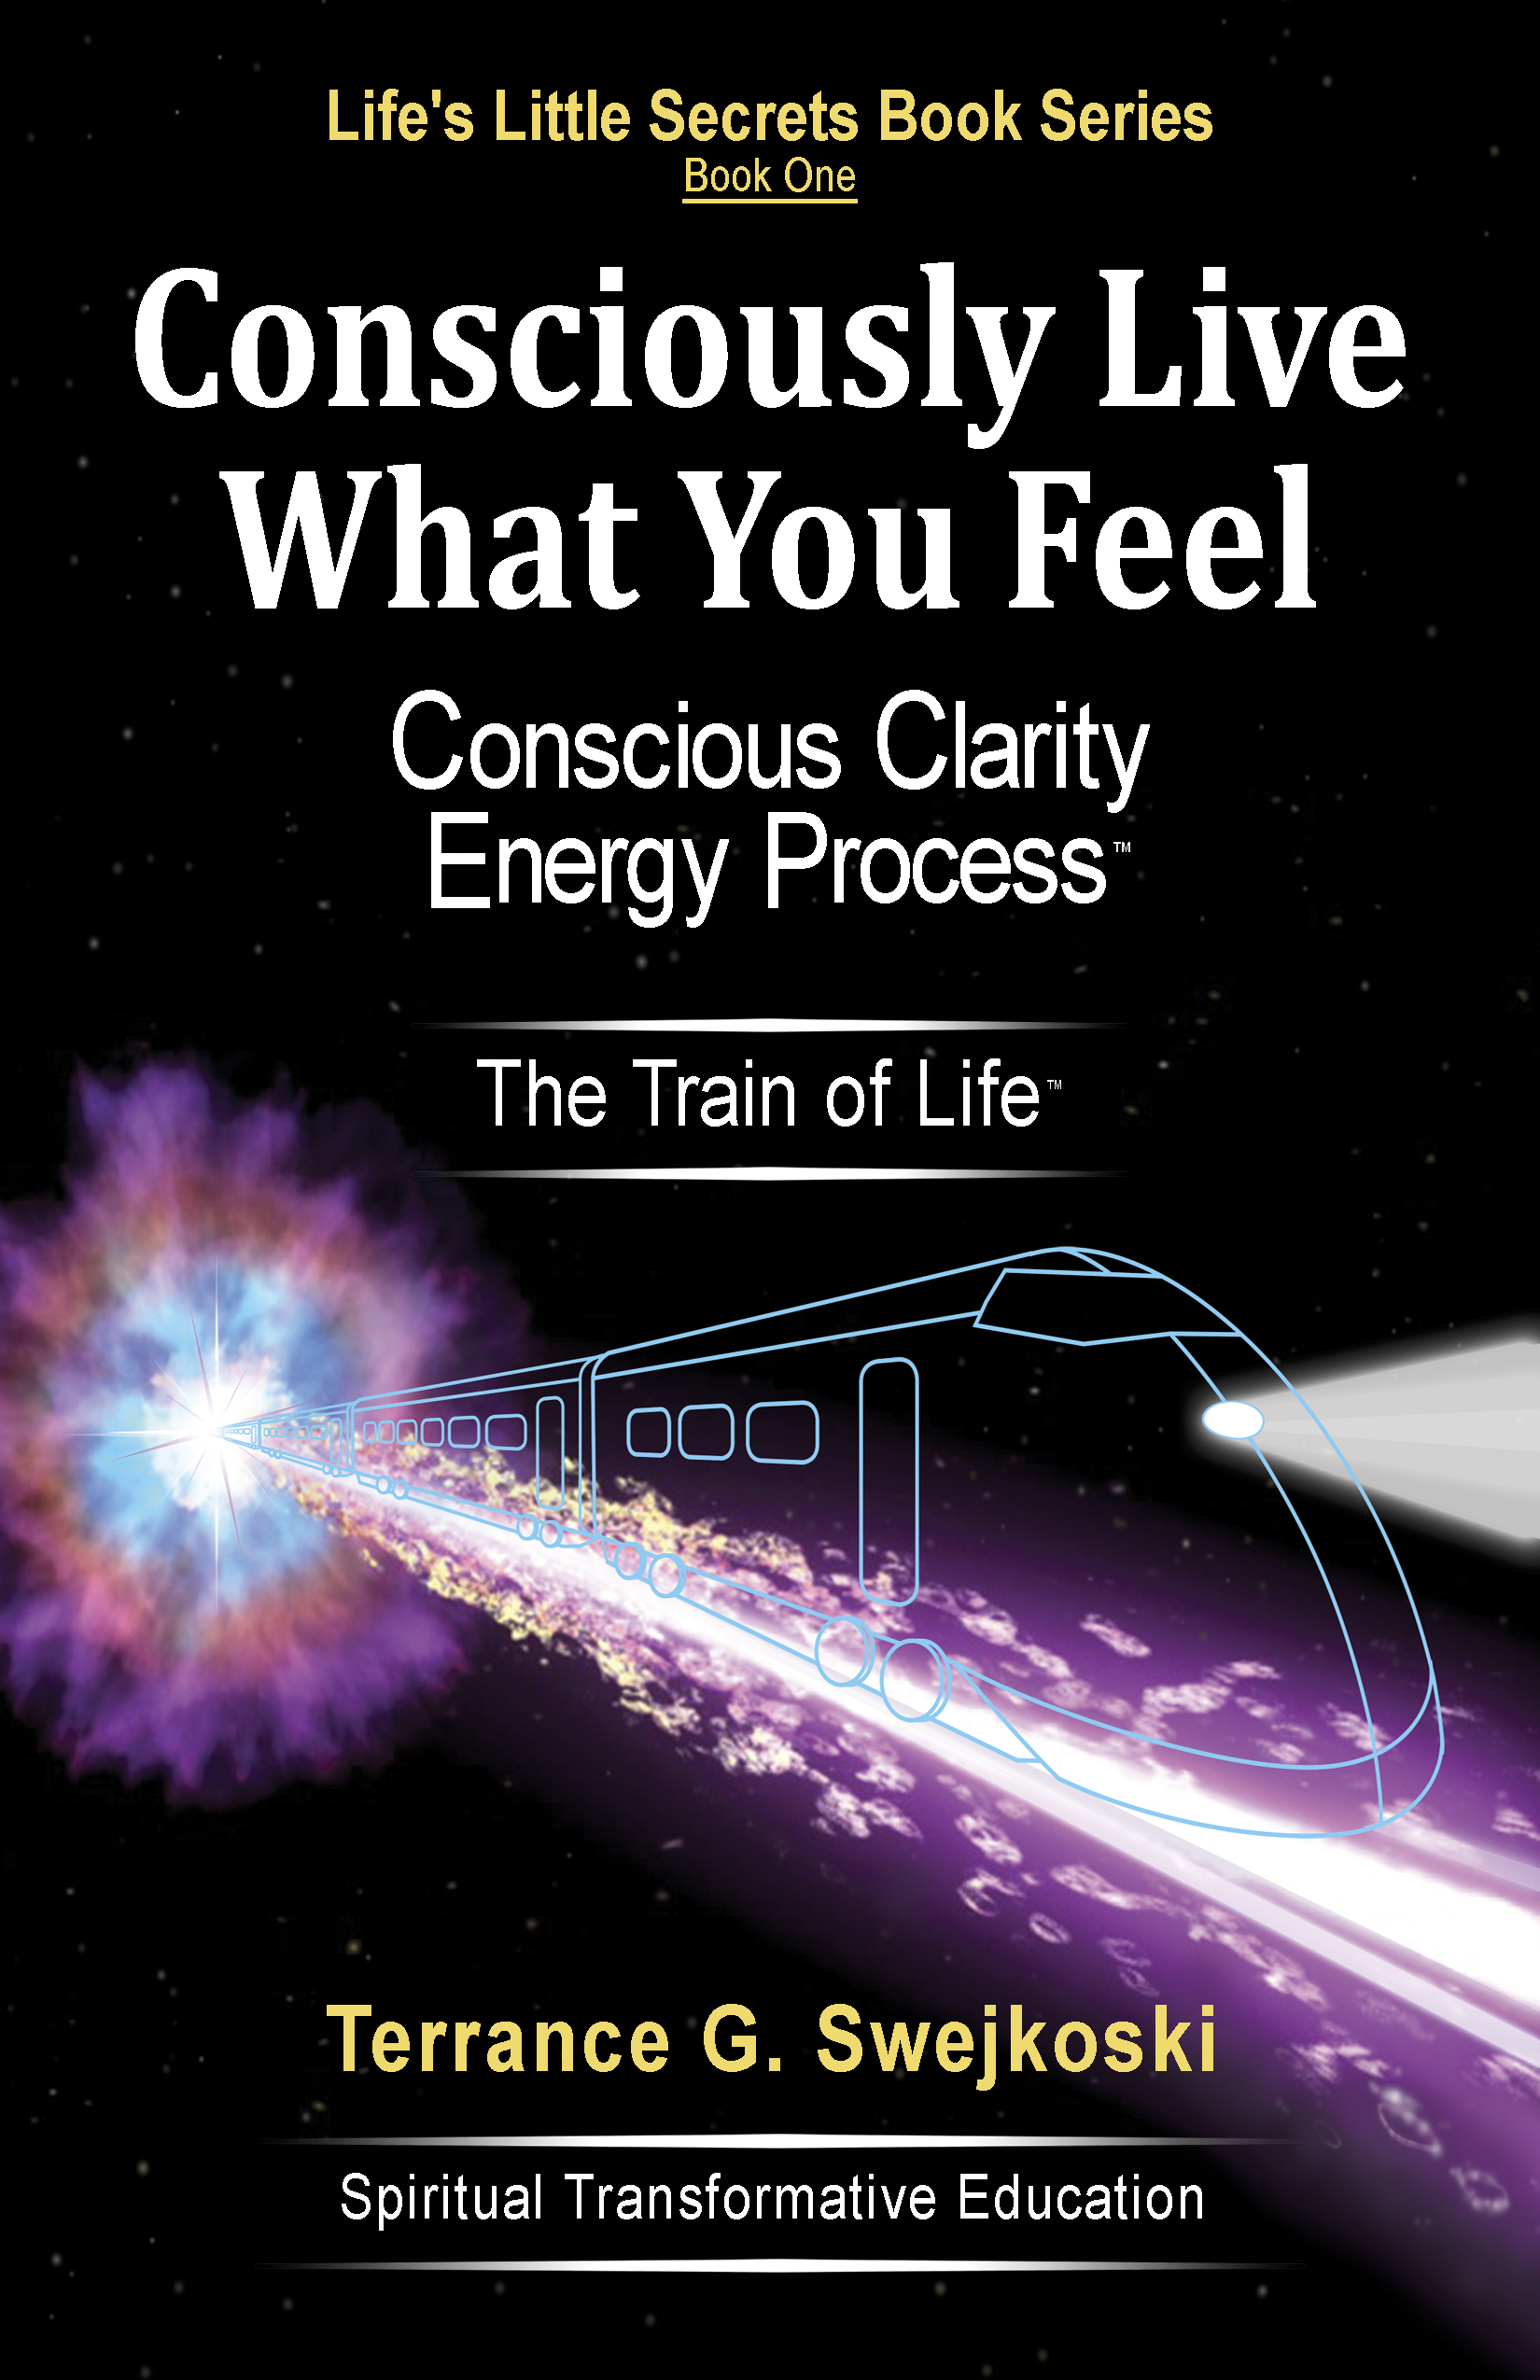 Consciously Live What You Feel